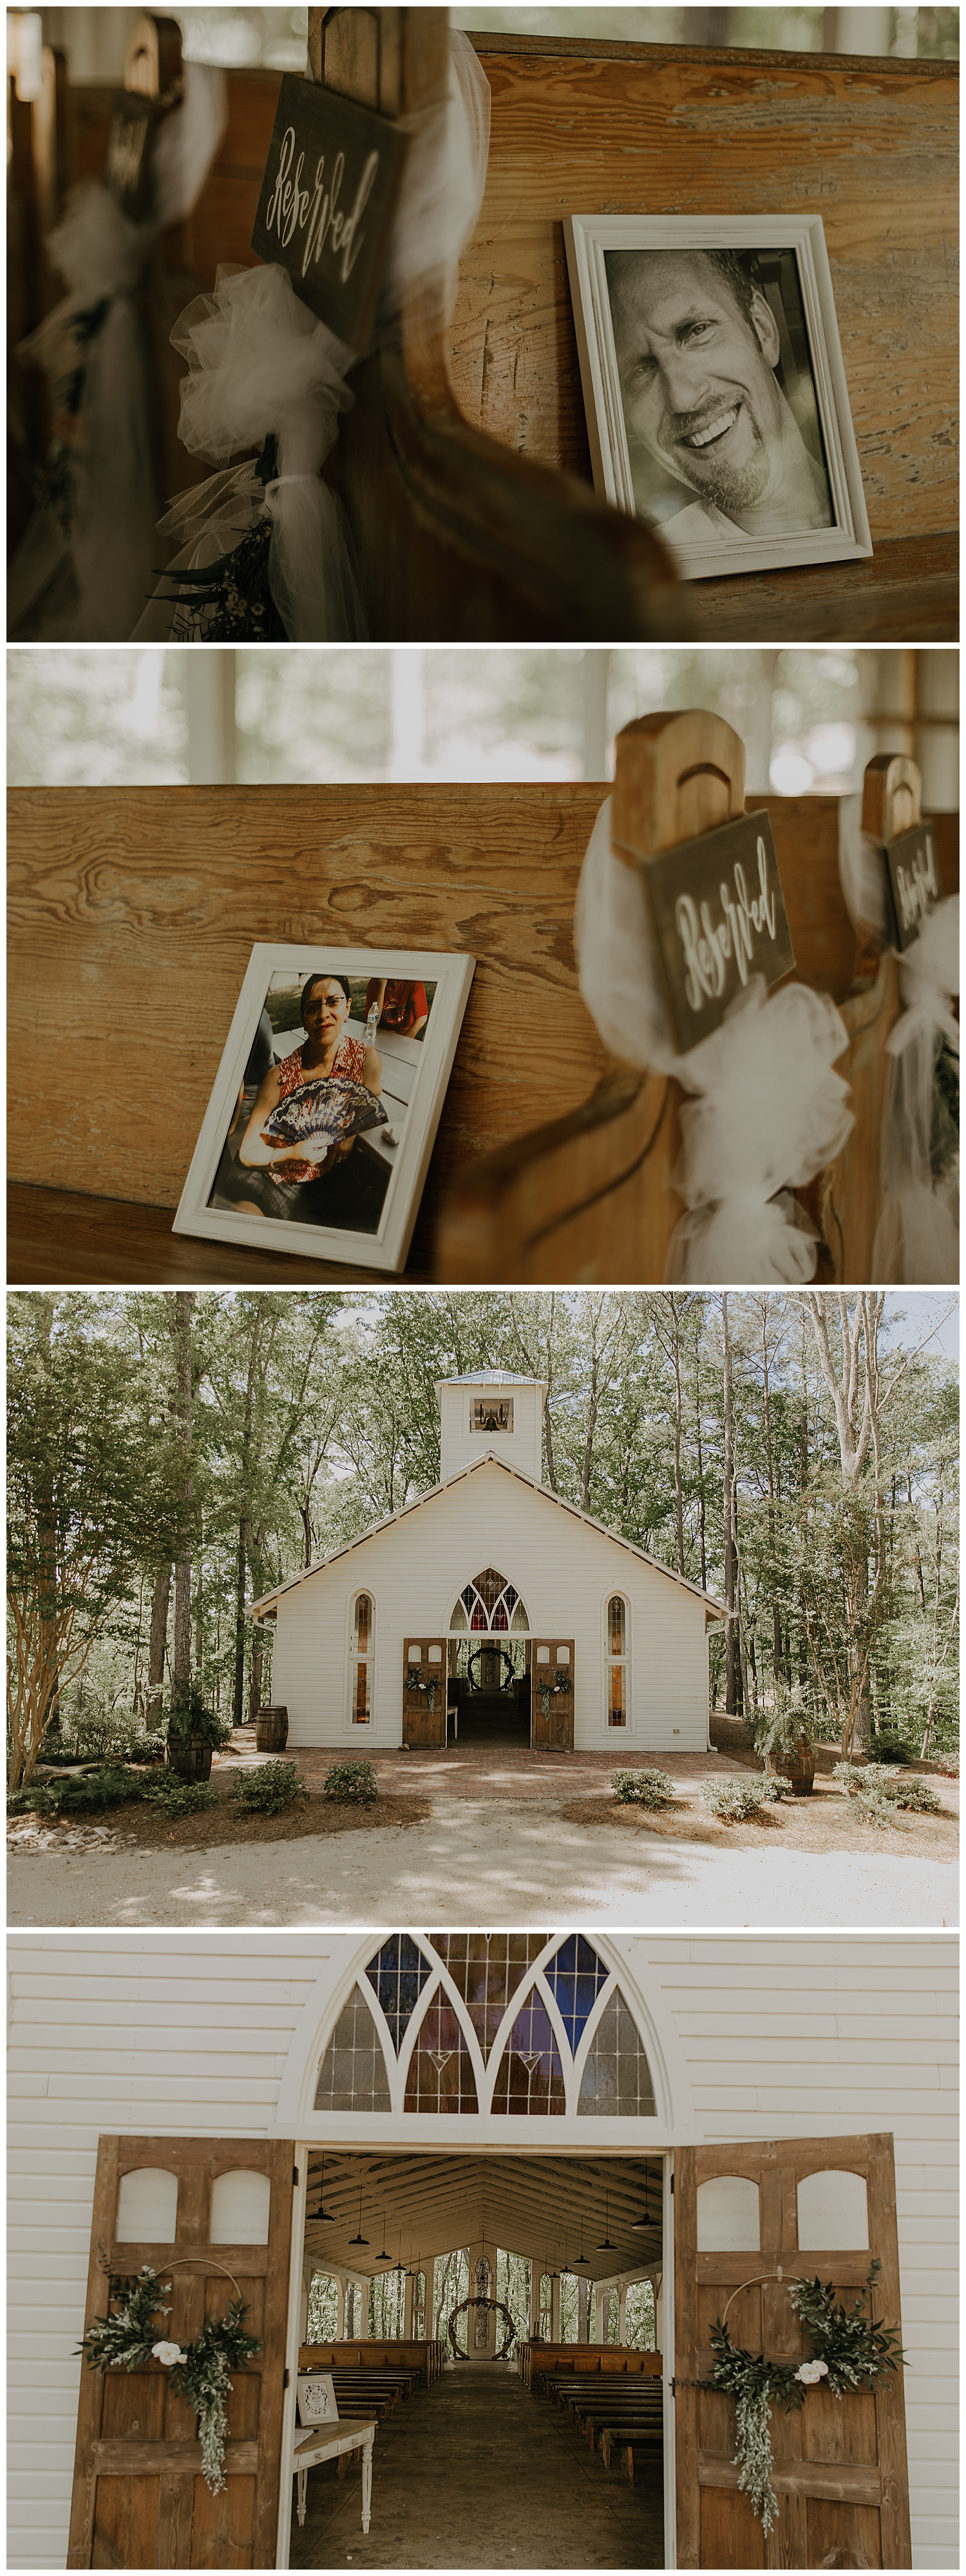 Ashley's father & Saul's mother may not have physically been there, but we all know they were spiritually there. This was such a special wedding for so many reasons including this one.